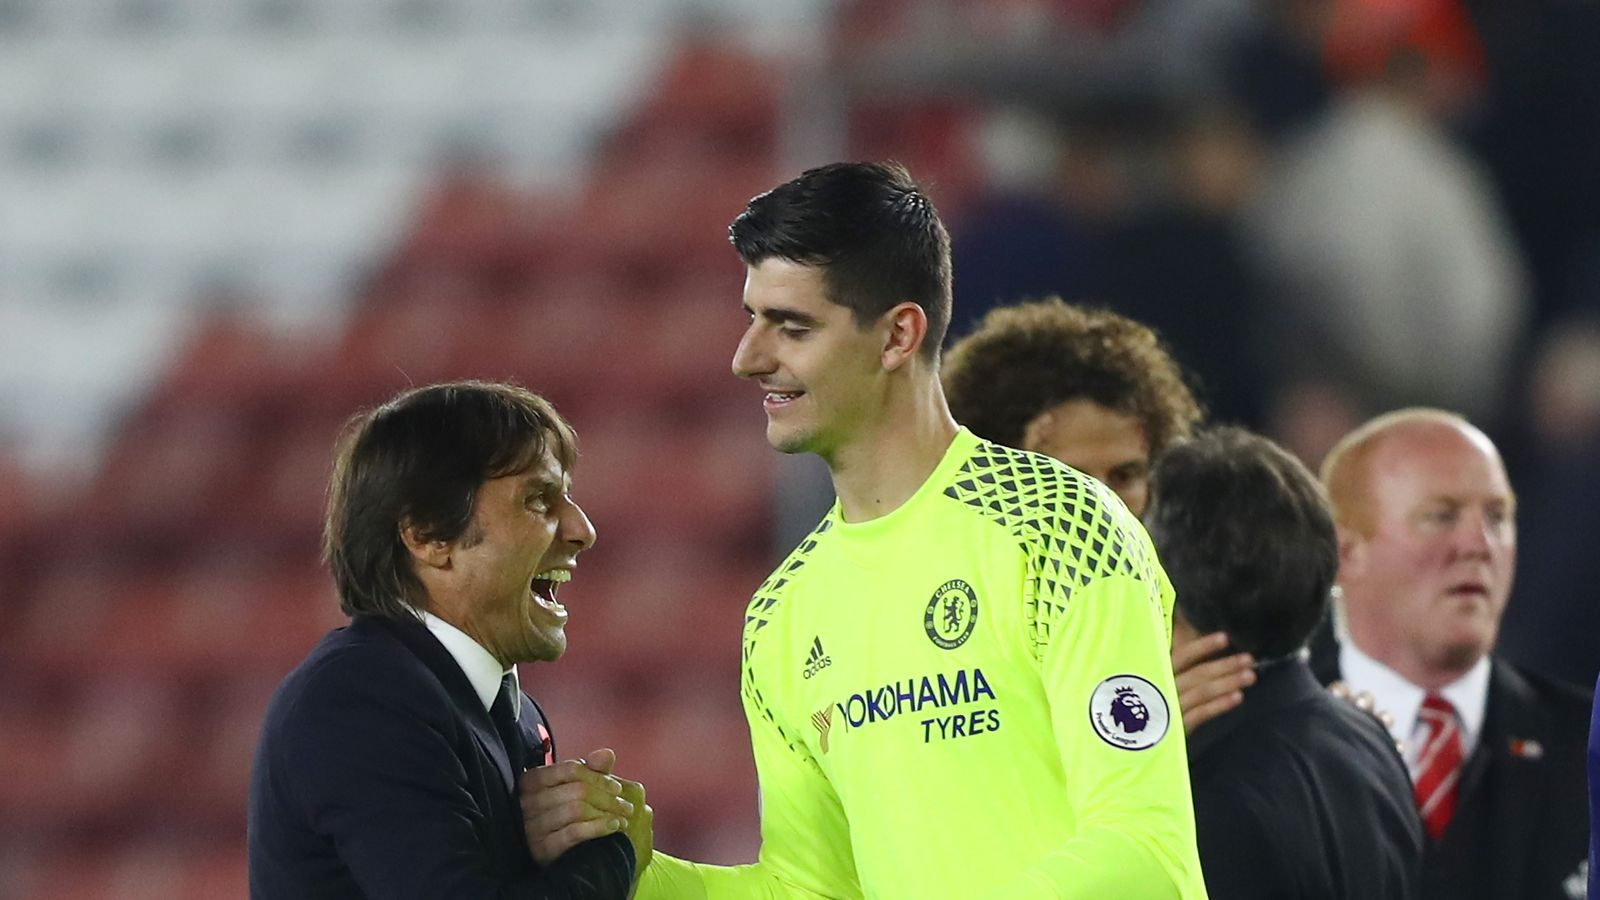 Thibaut Courtois comments on baseless Real Madrid and Atlético Madrid rumors, happy Chelsea future